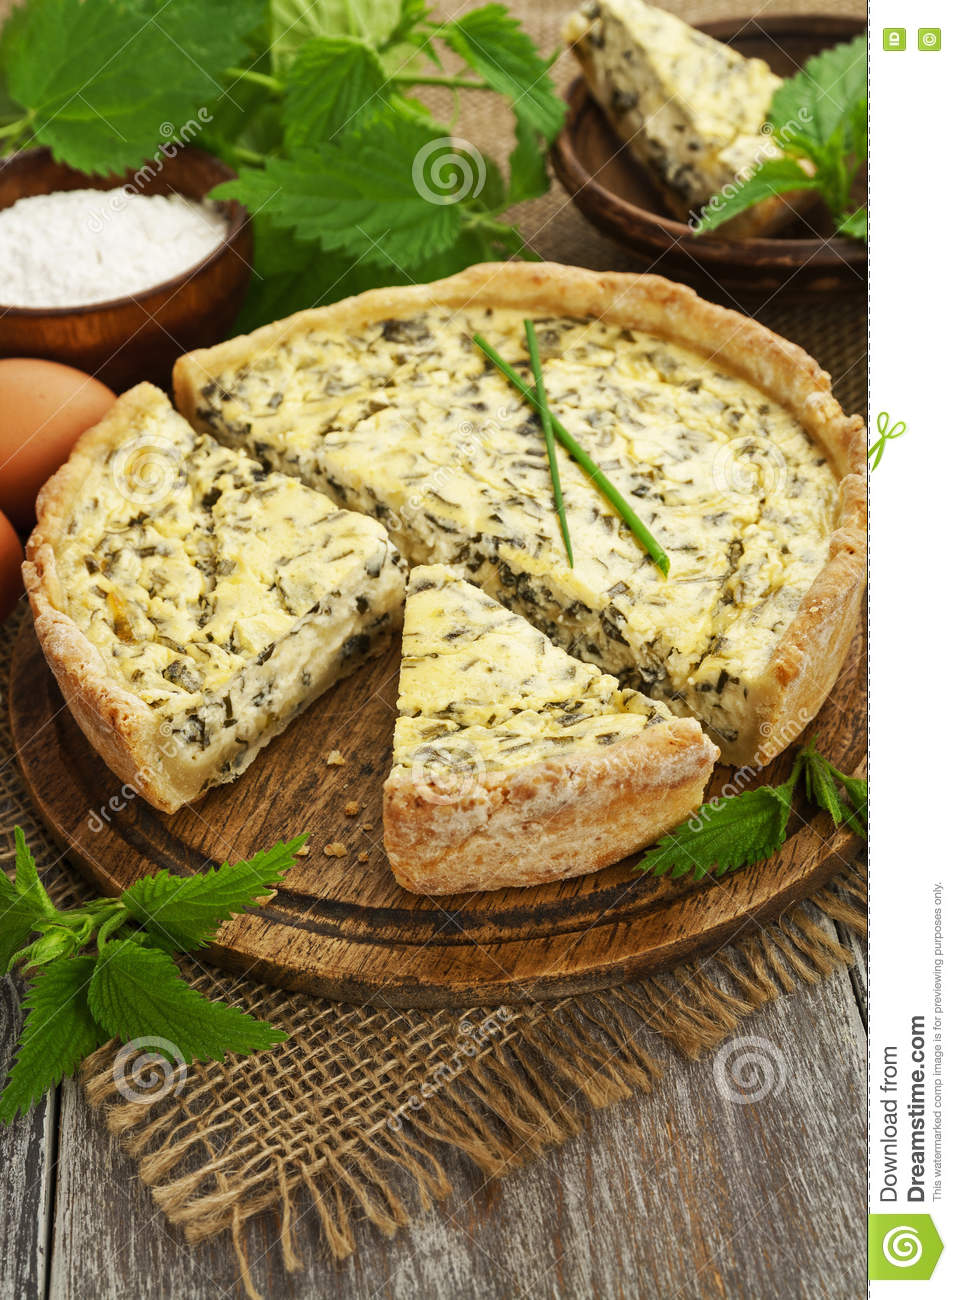 Pie with nettle